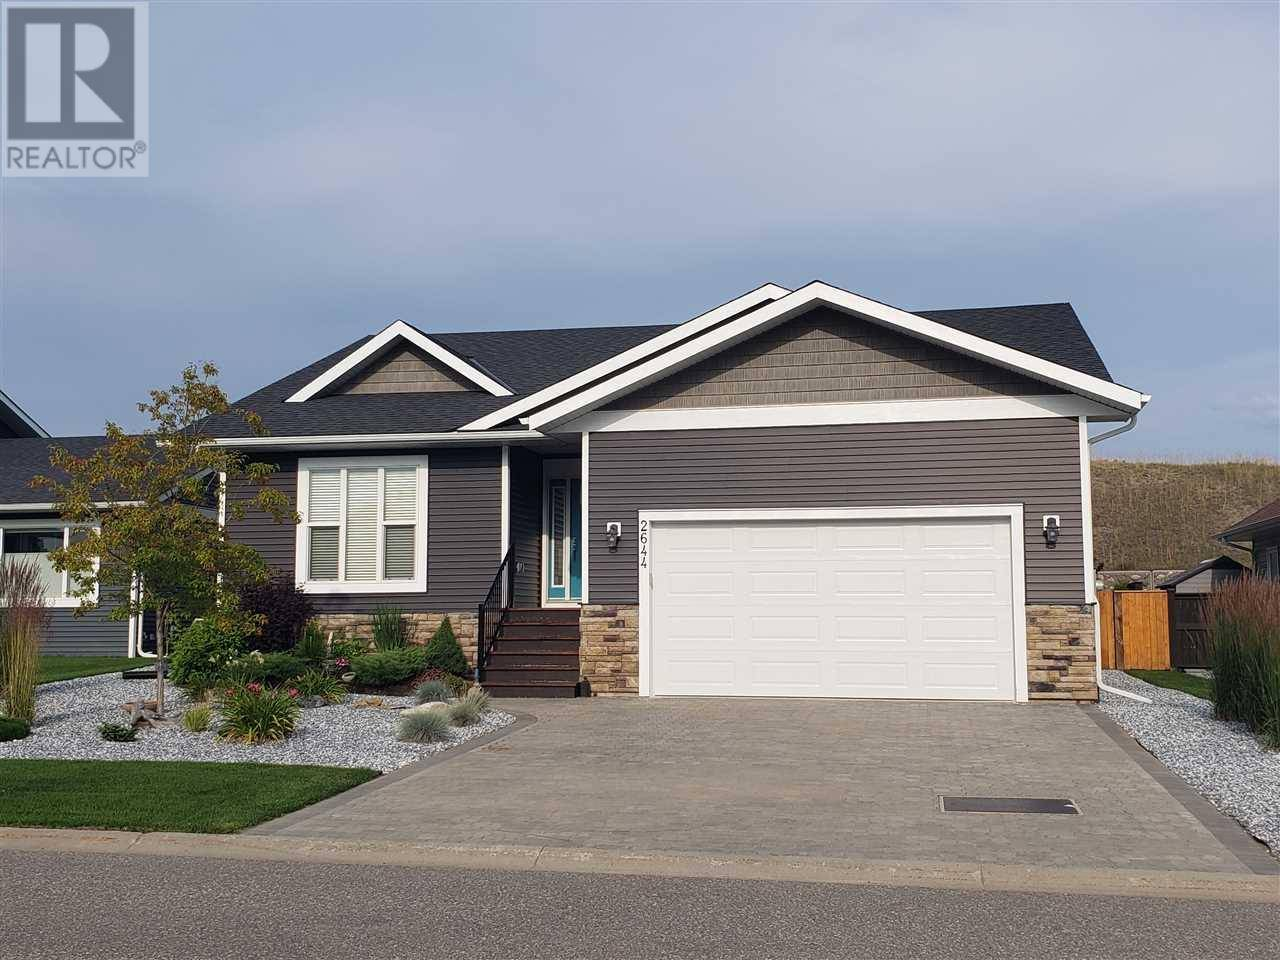 House for sale at 2644 Links Dr Prince George British Columbia - MLS: R2394053